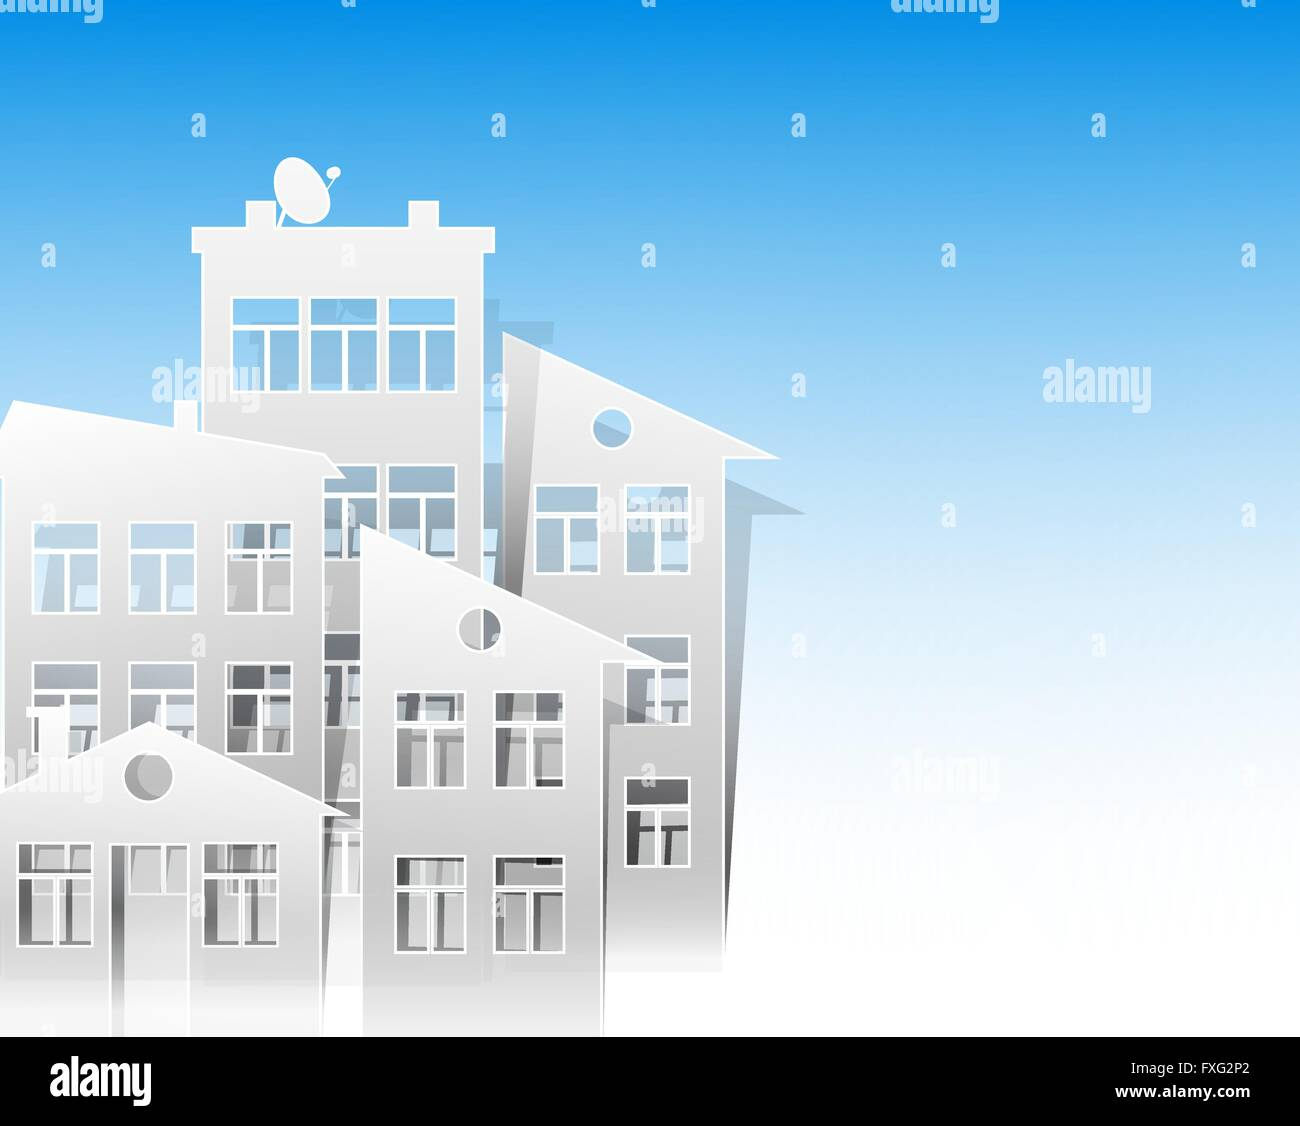 White Houses Paper Cut Out Style As Real Estate Symbols On Light